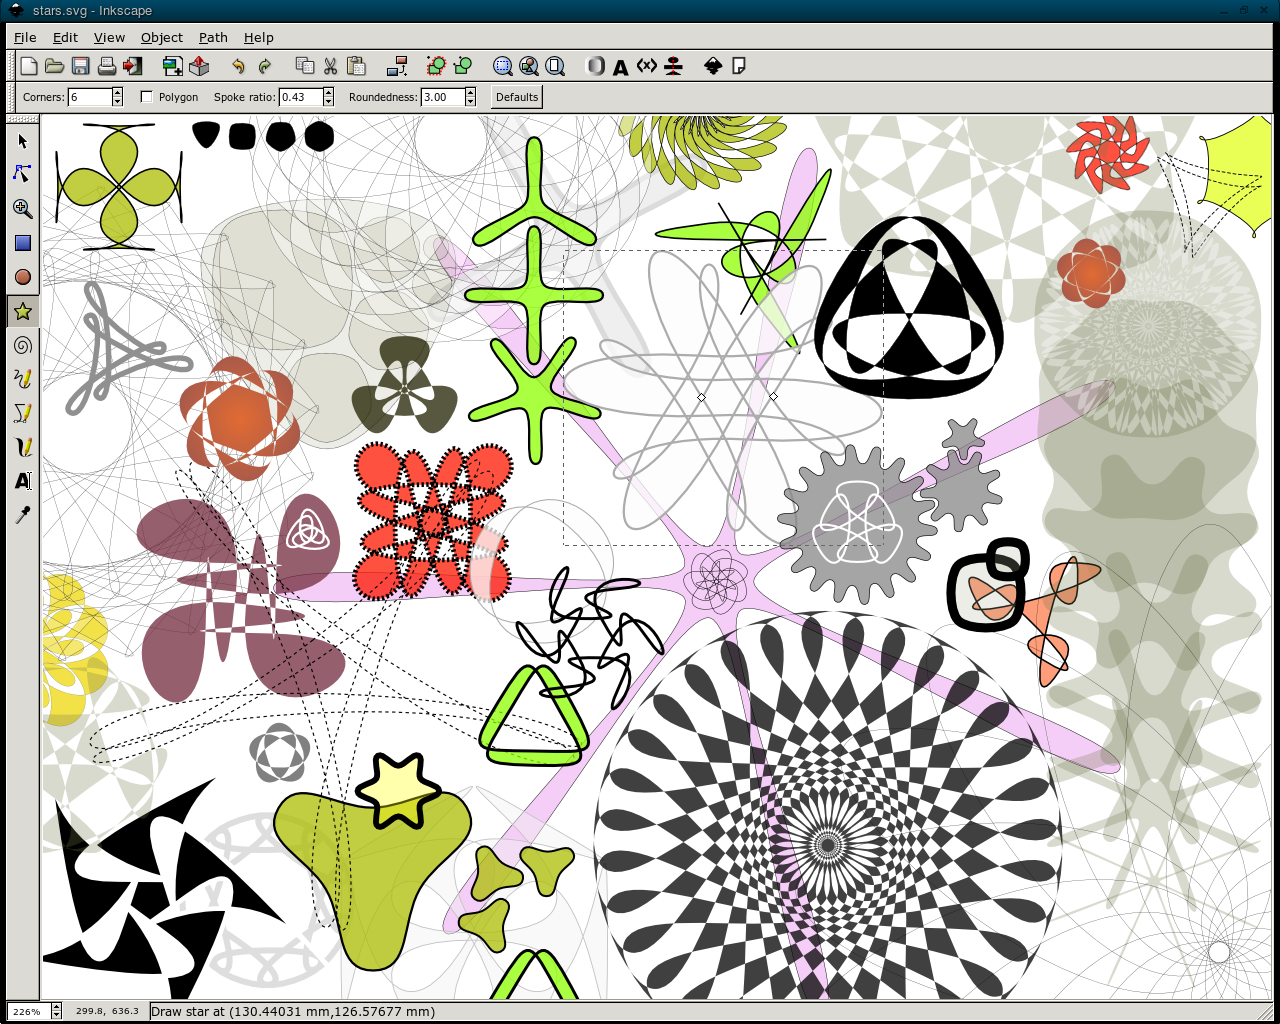 Inkscape for Windows